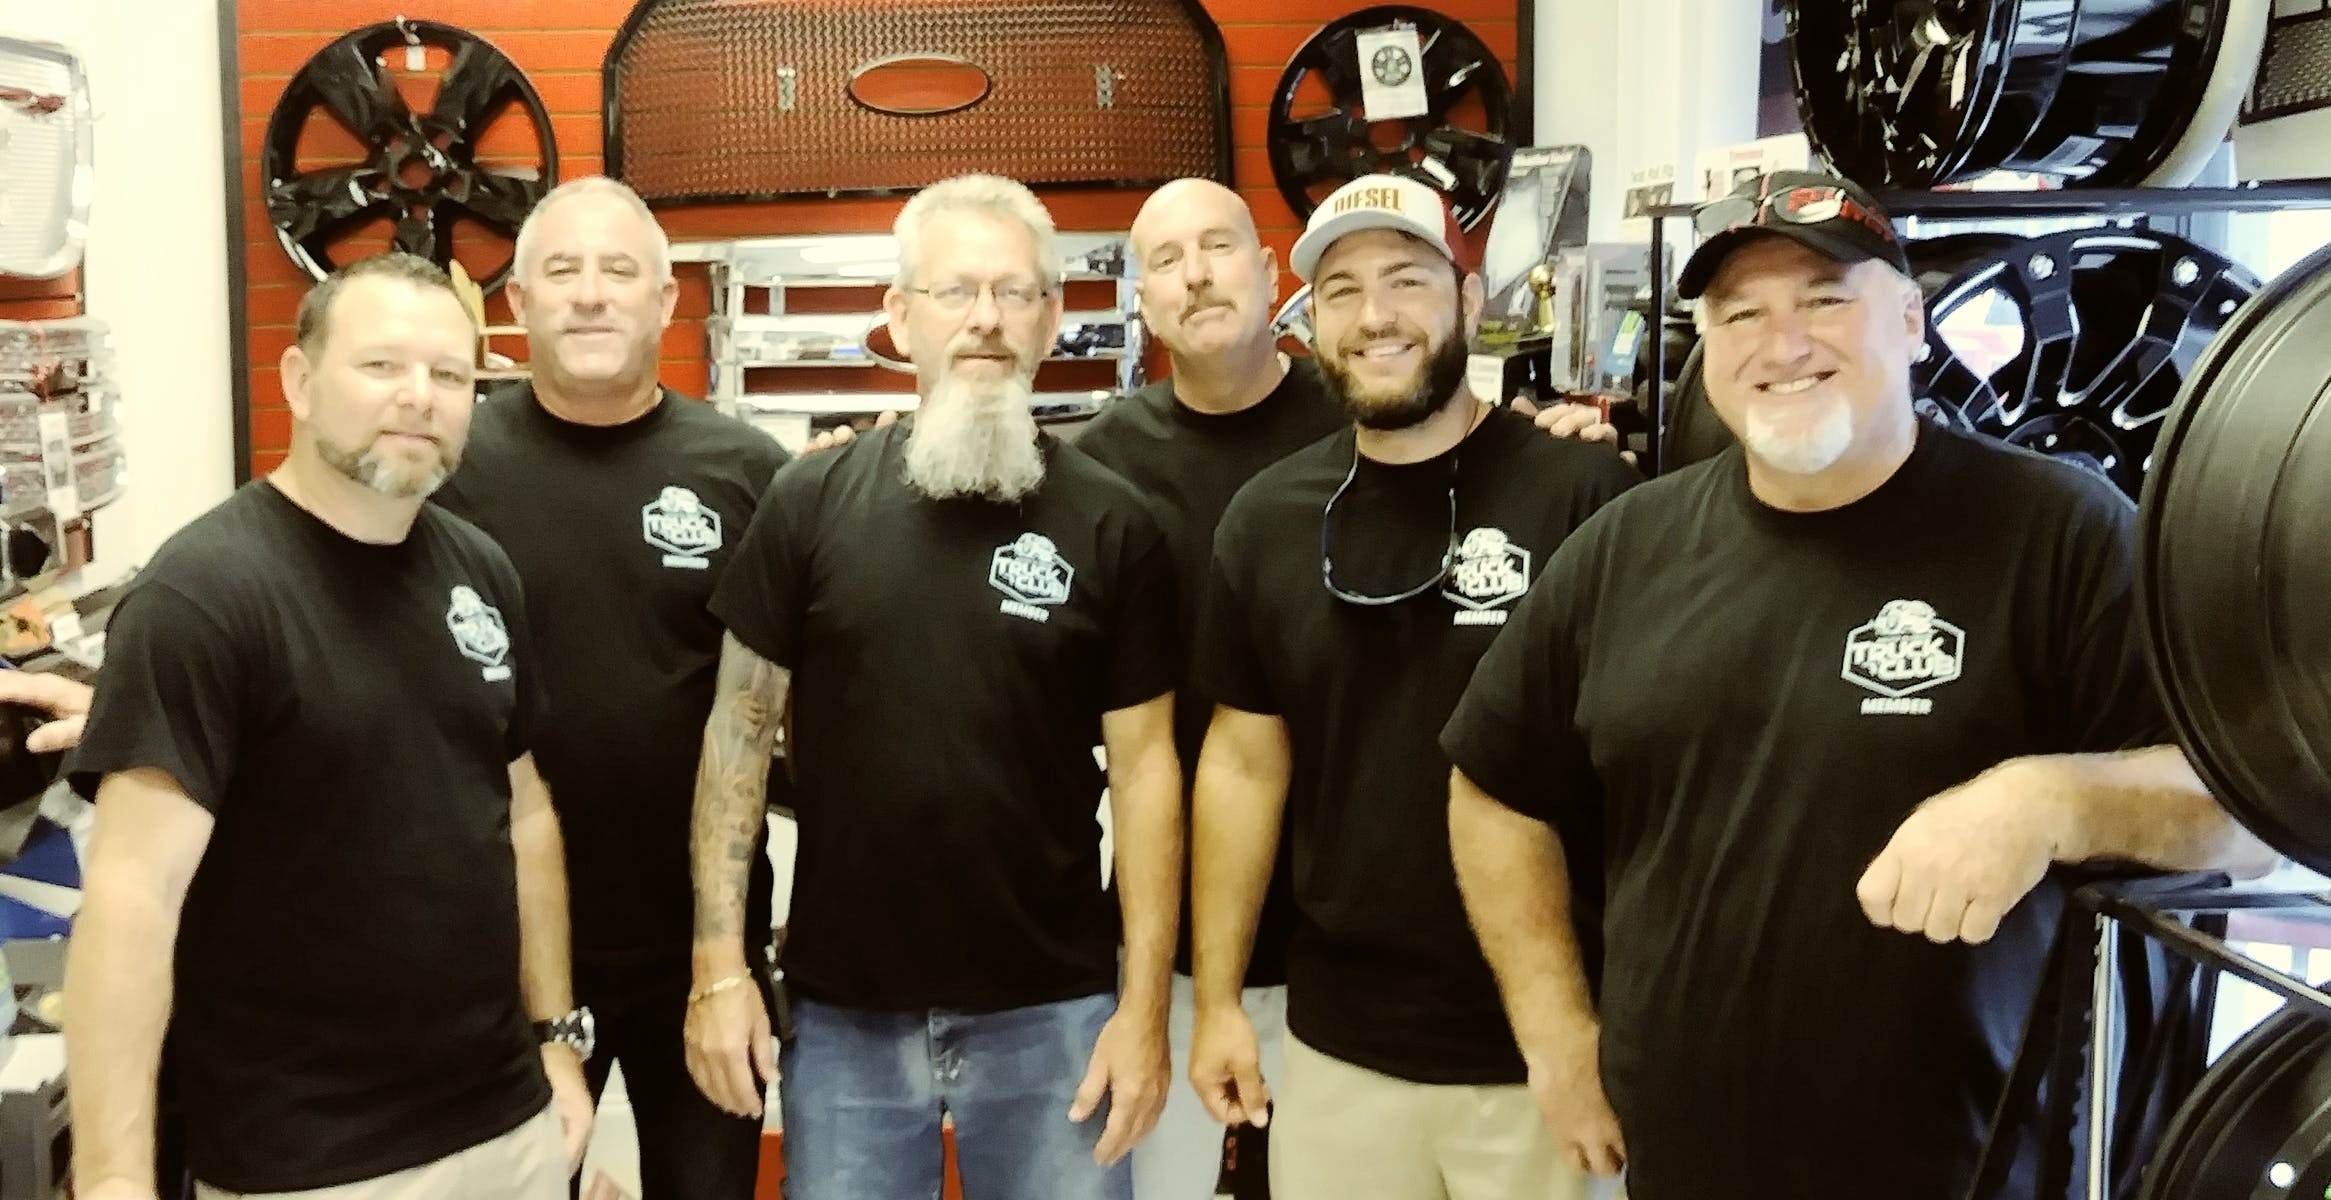 Members of the South Florida Truck Club